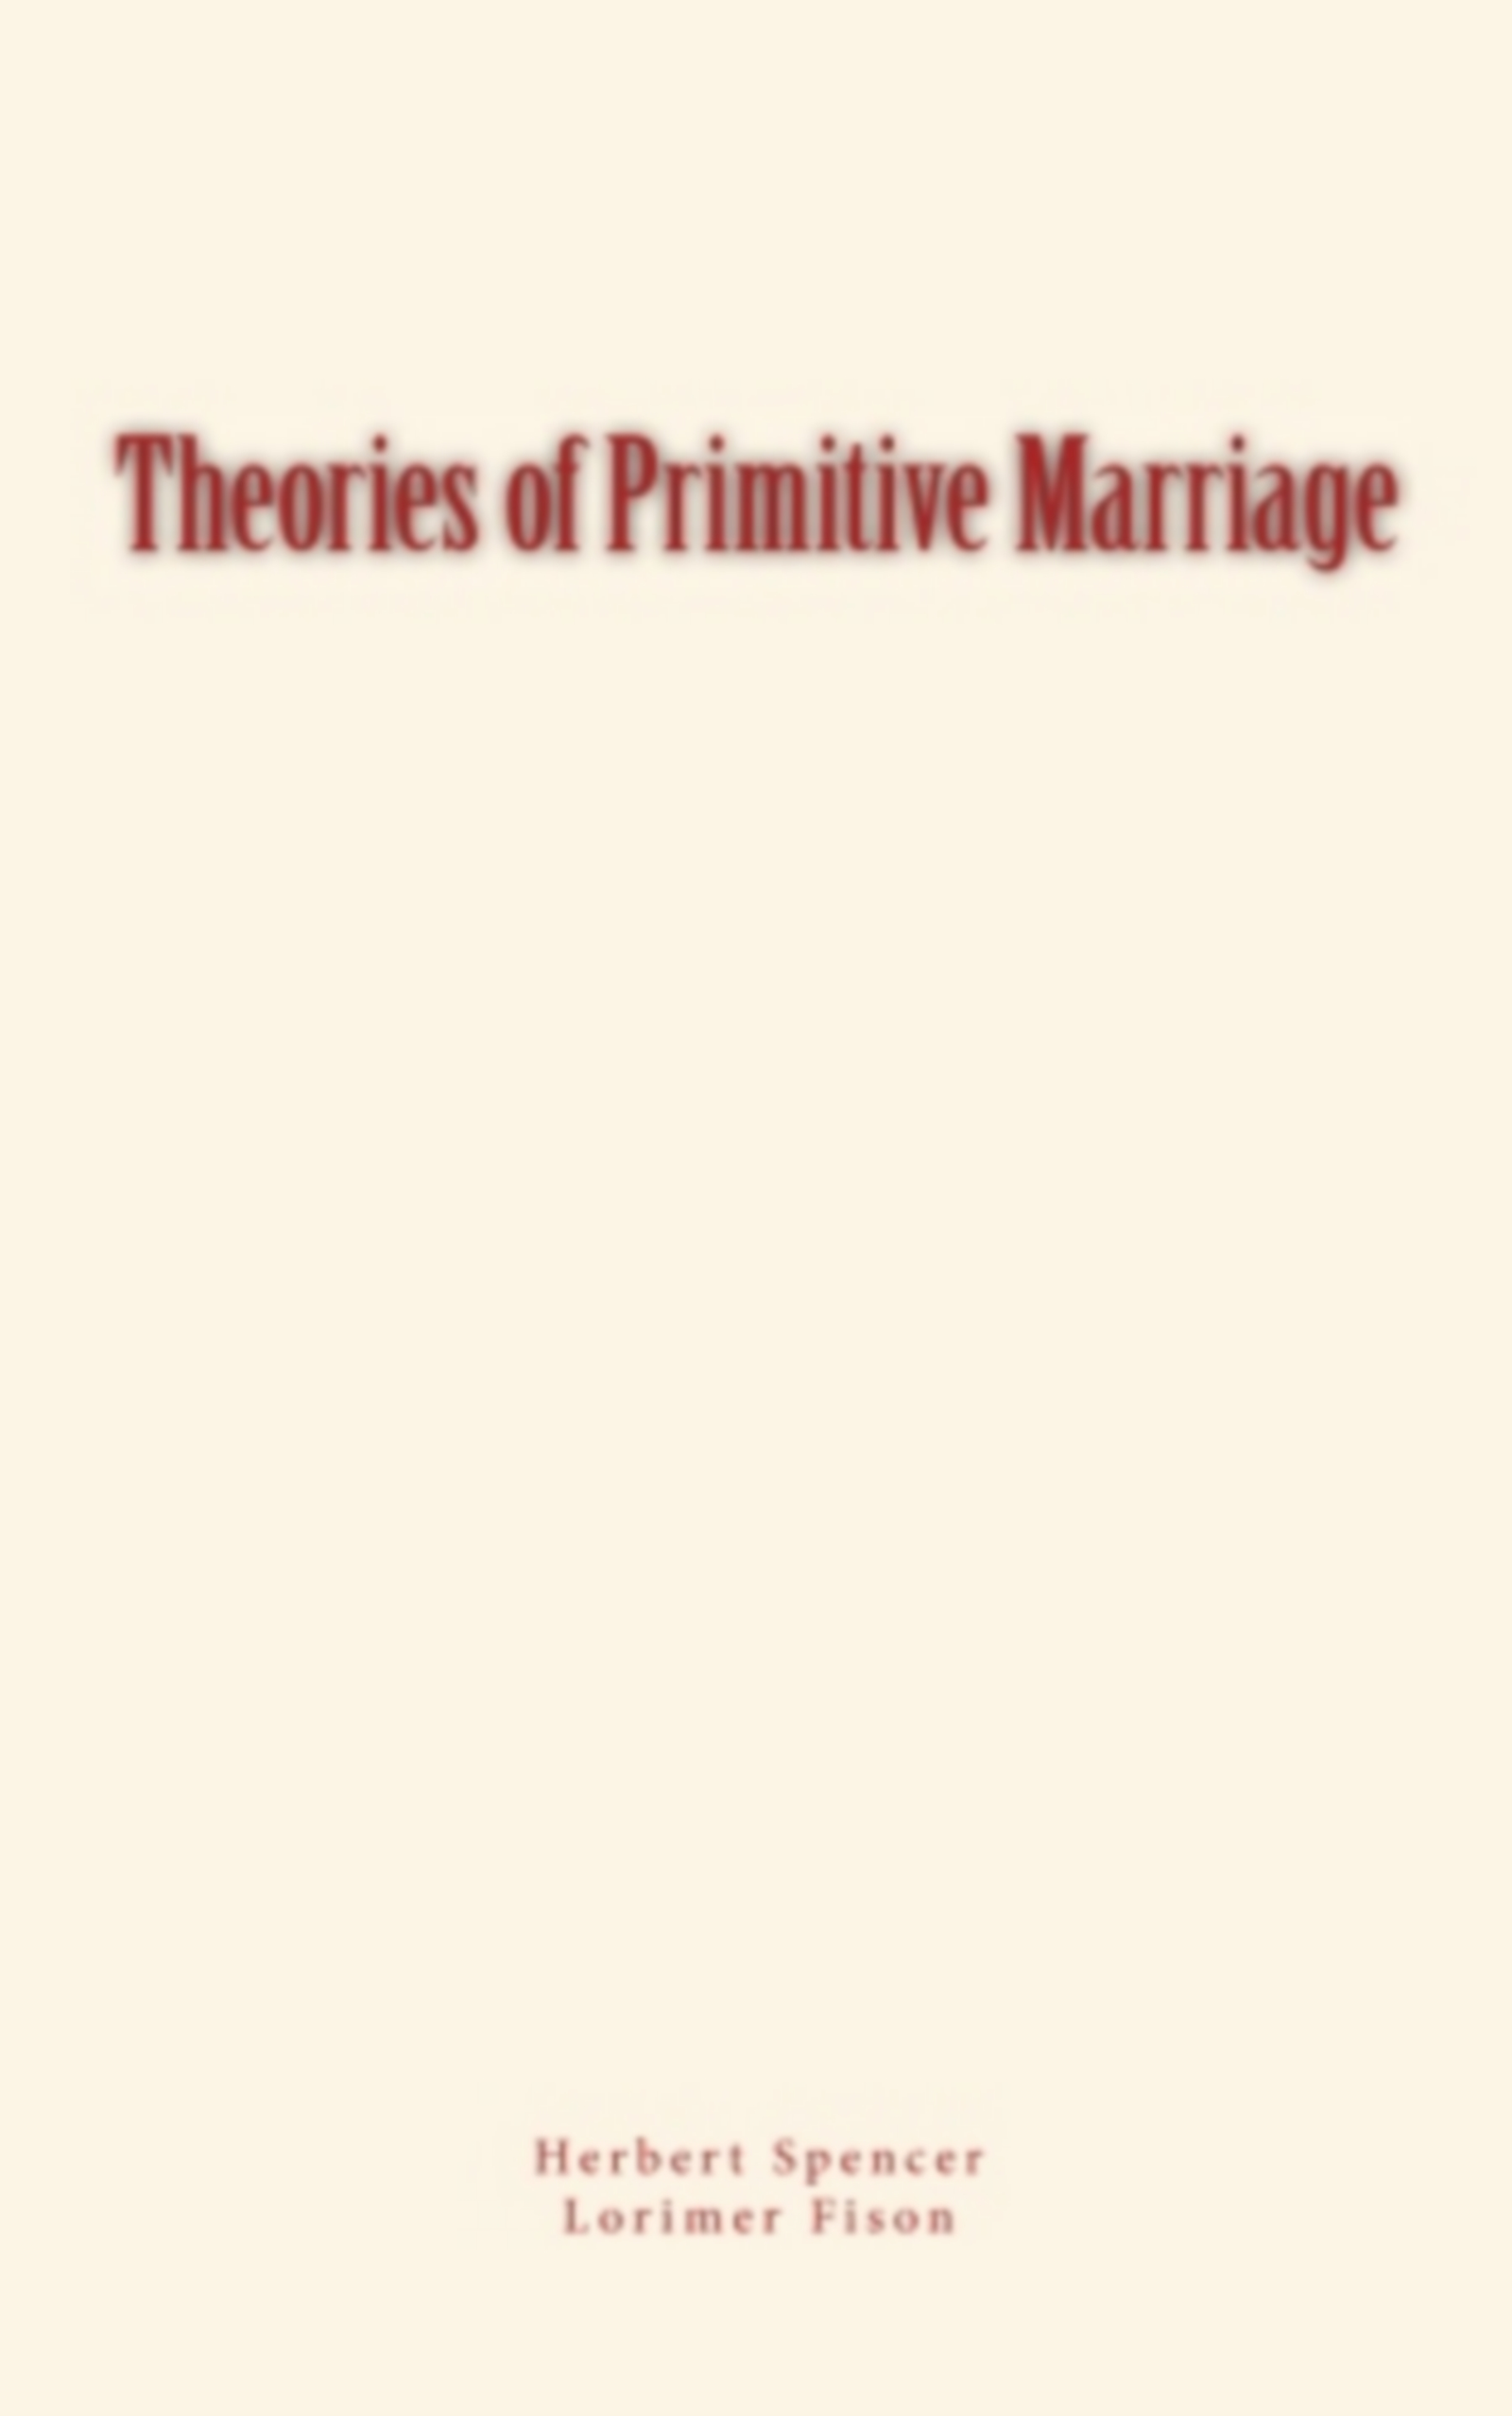 Theories of Primitive Marriage